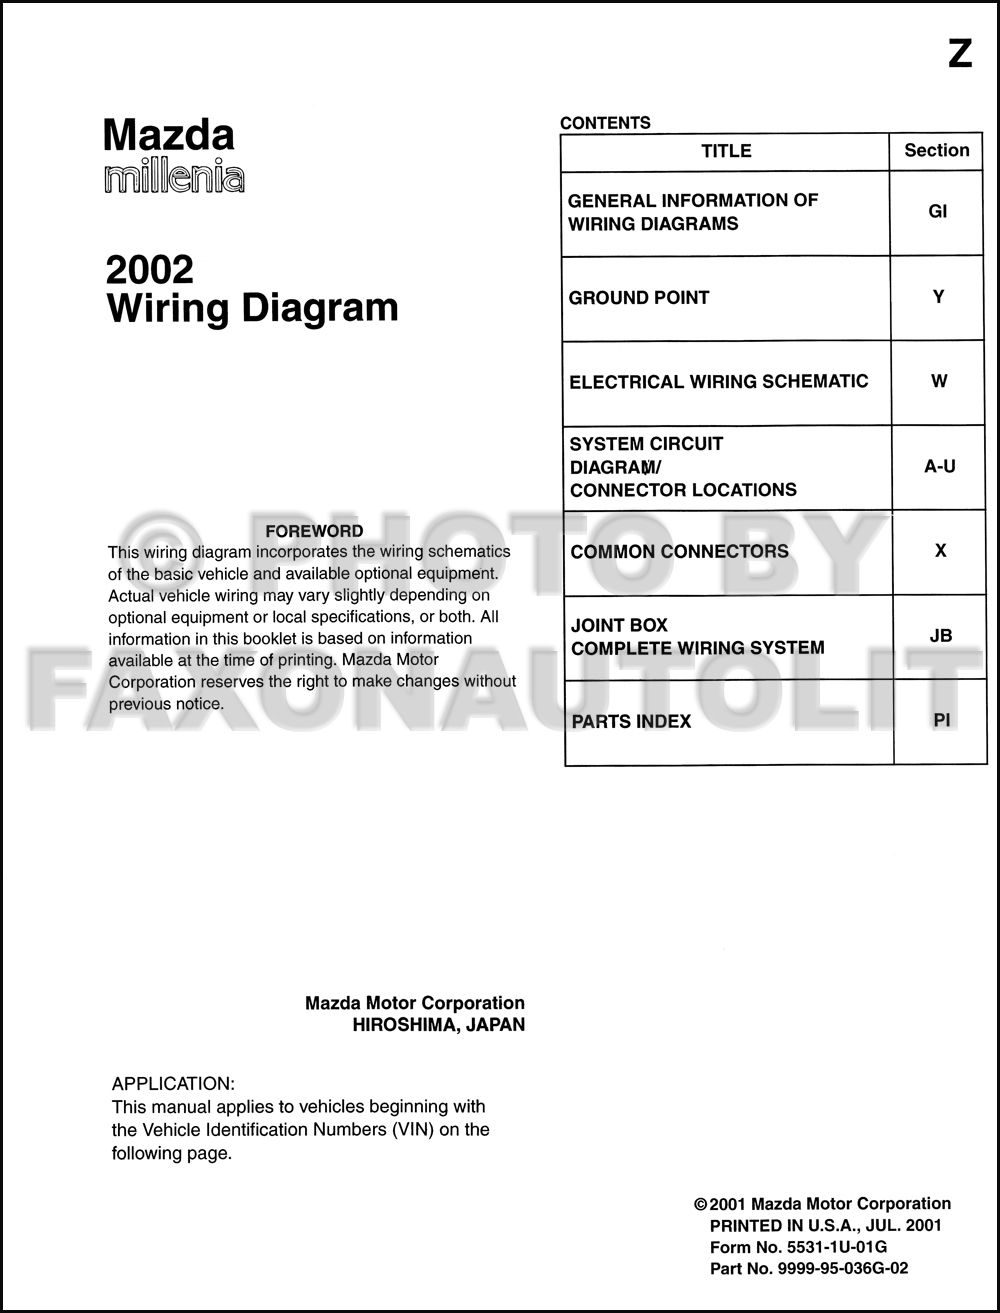 2002 Mazda Millenia Wiring Diagram Manual Original